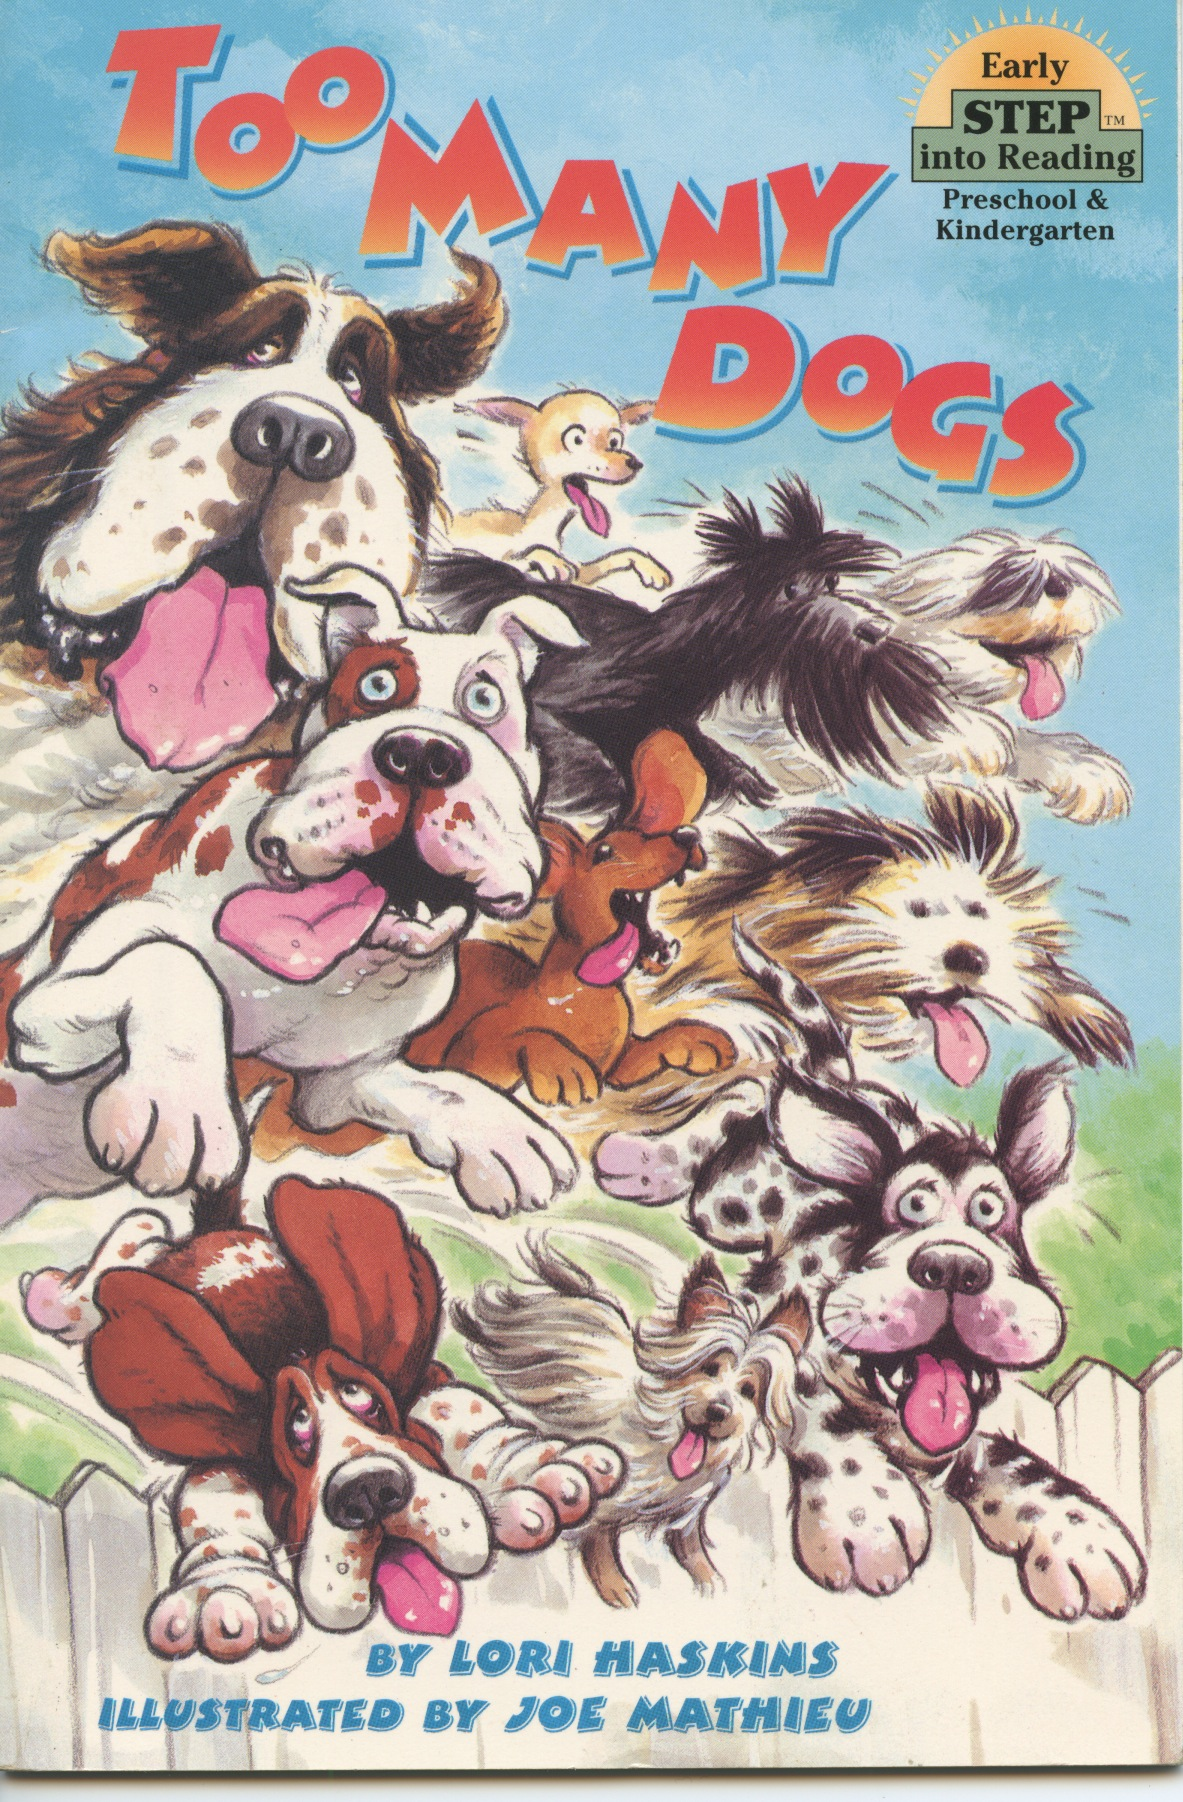 Dogs cover.jpeg